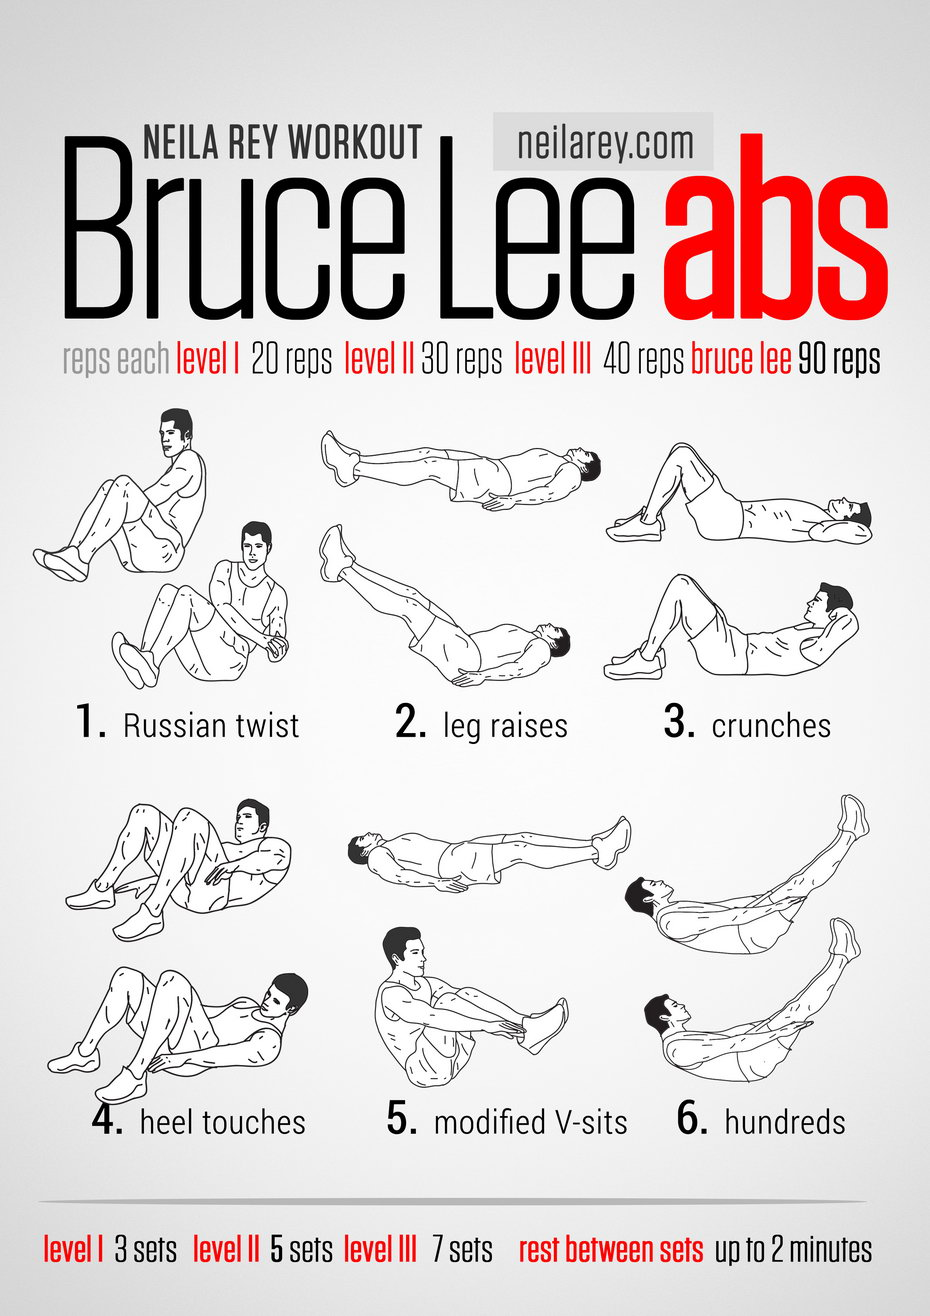 Abs Through An Intensive Daily Routine Visual Workout Guides For Full Bodyweight No Equipment Training